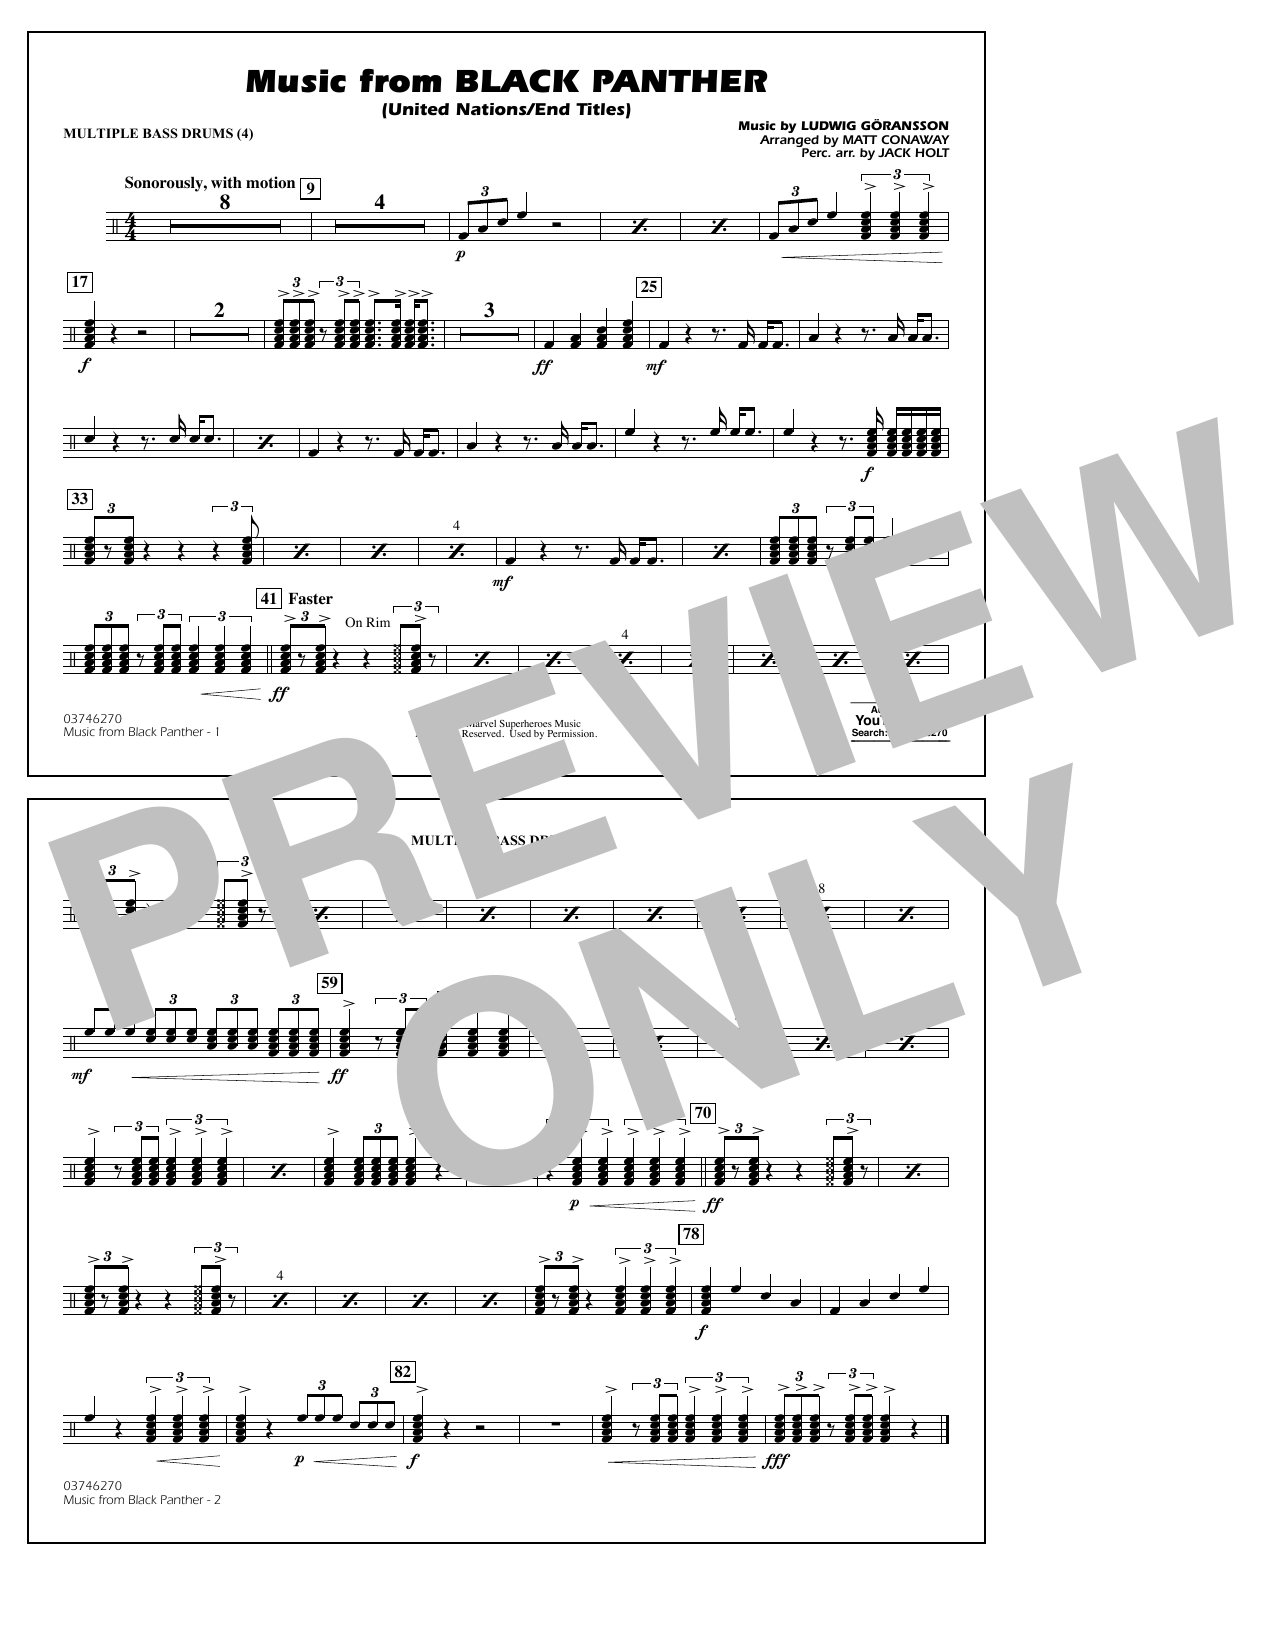 Music from Black Panther (arr. Matt Conaway) - Multiple Bass Drums (Marching Band)